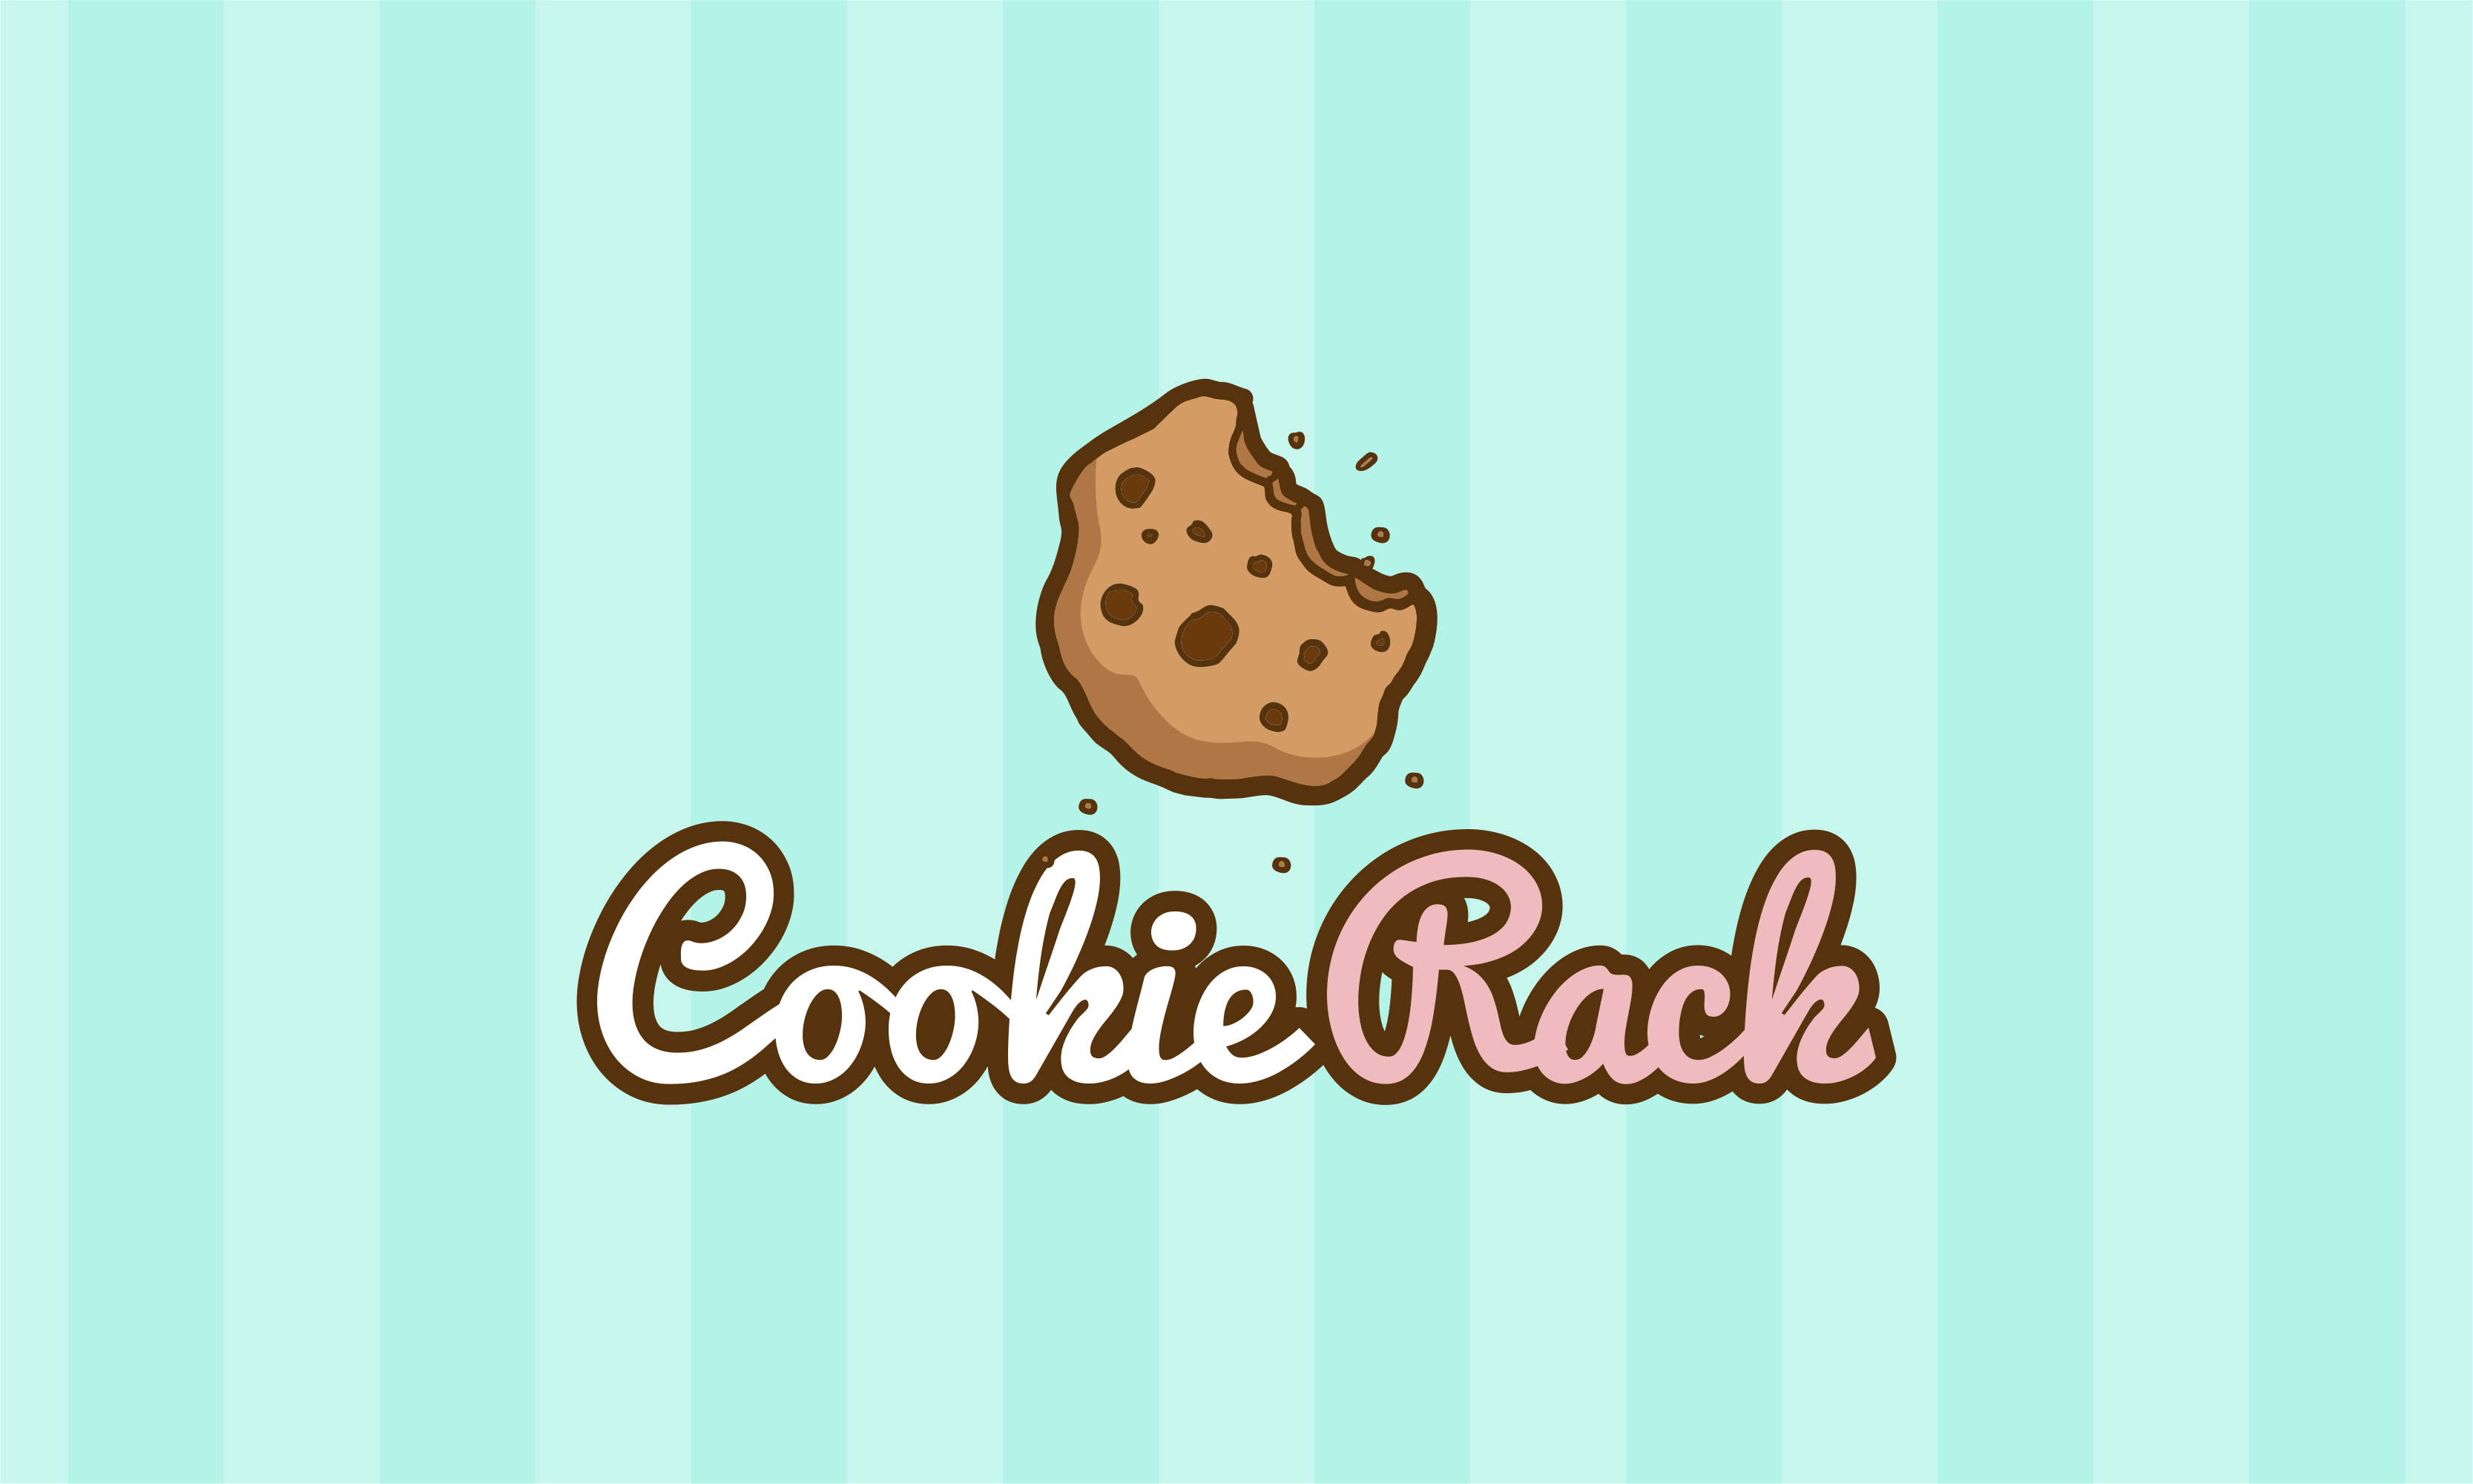 Cookierack - Potential brand name for sale